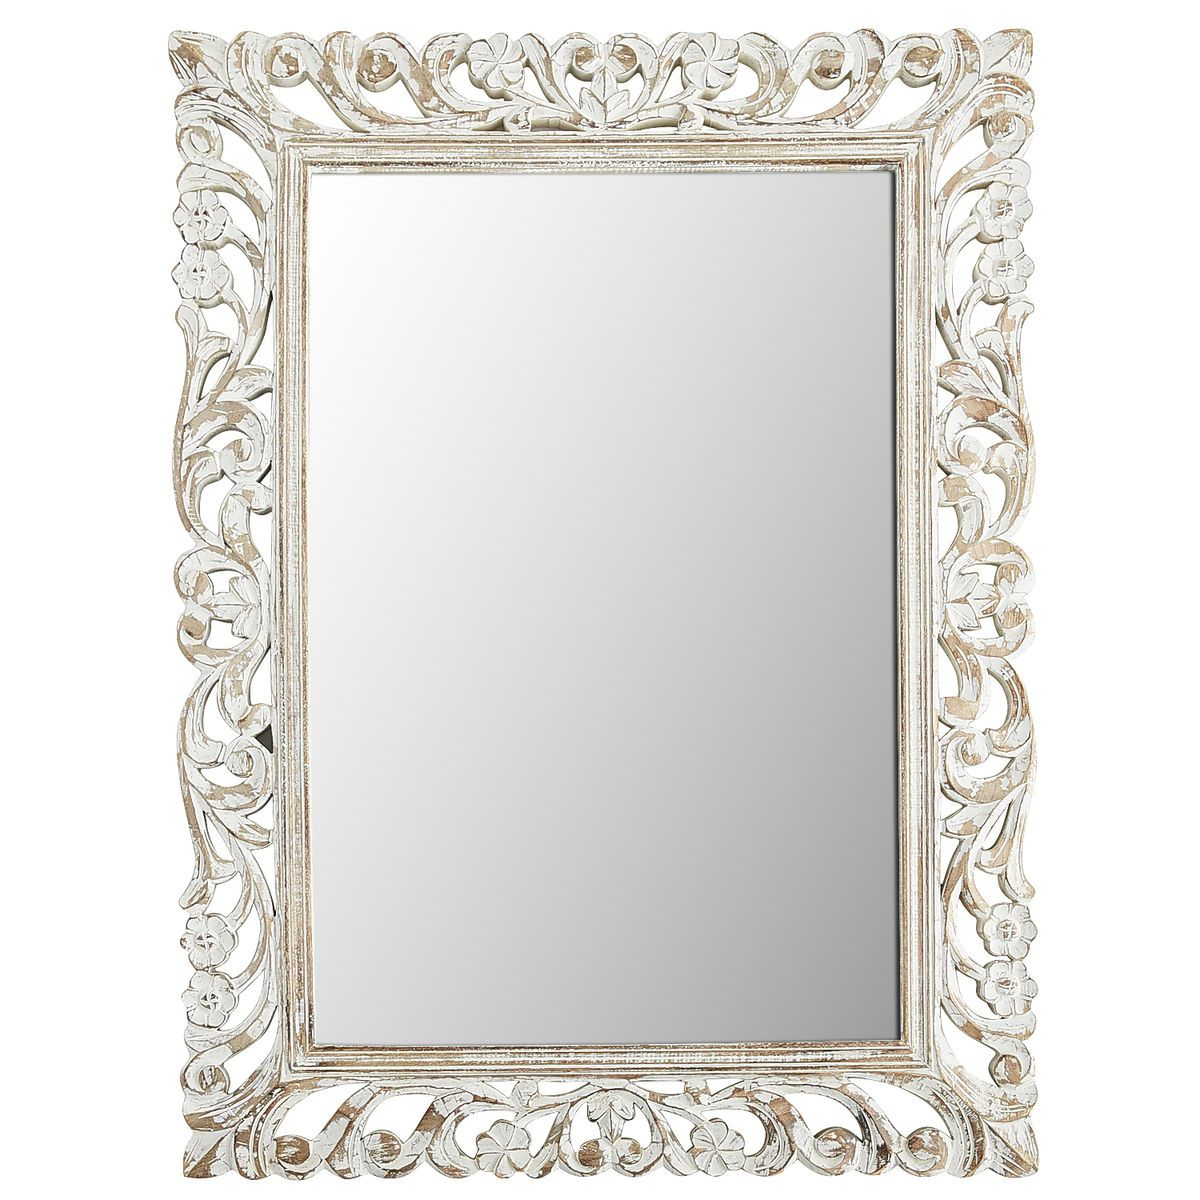 White Floral Carved Wood Frame Mirror | Pier 1 Imports | decorating ...